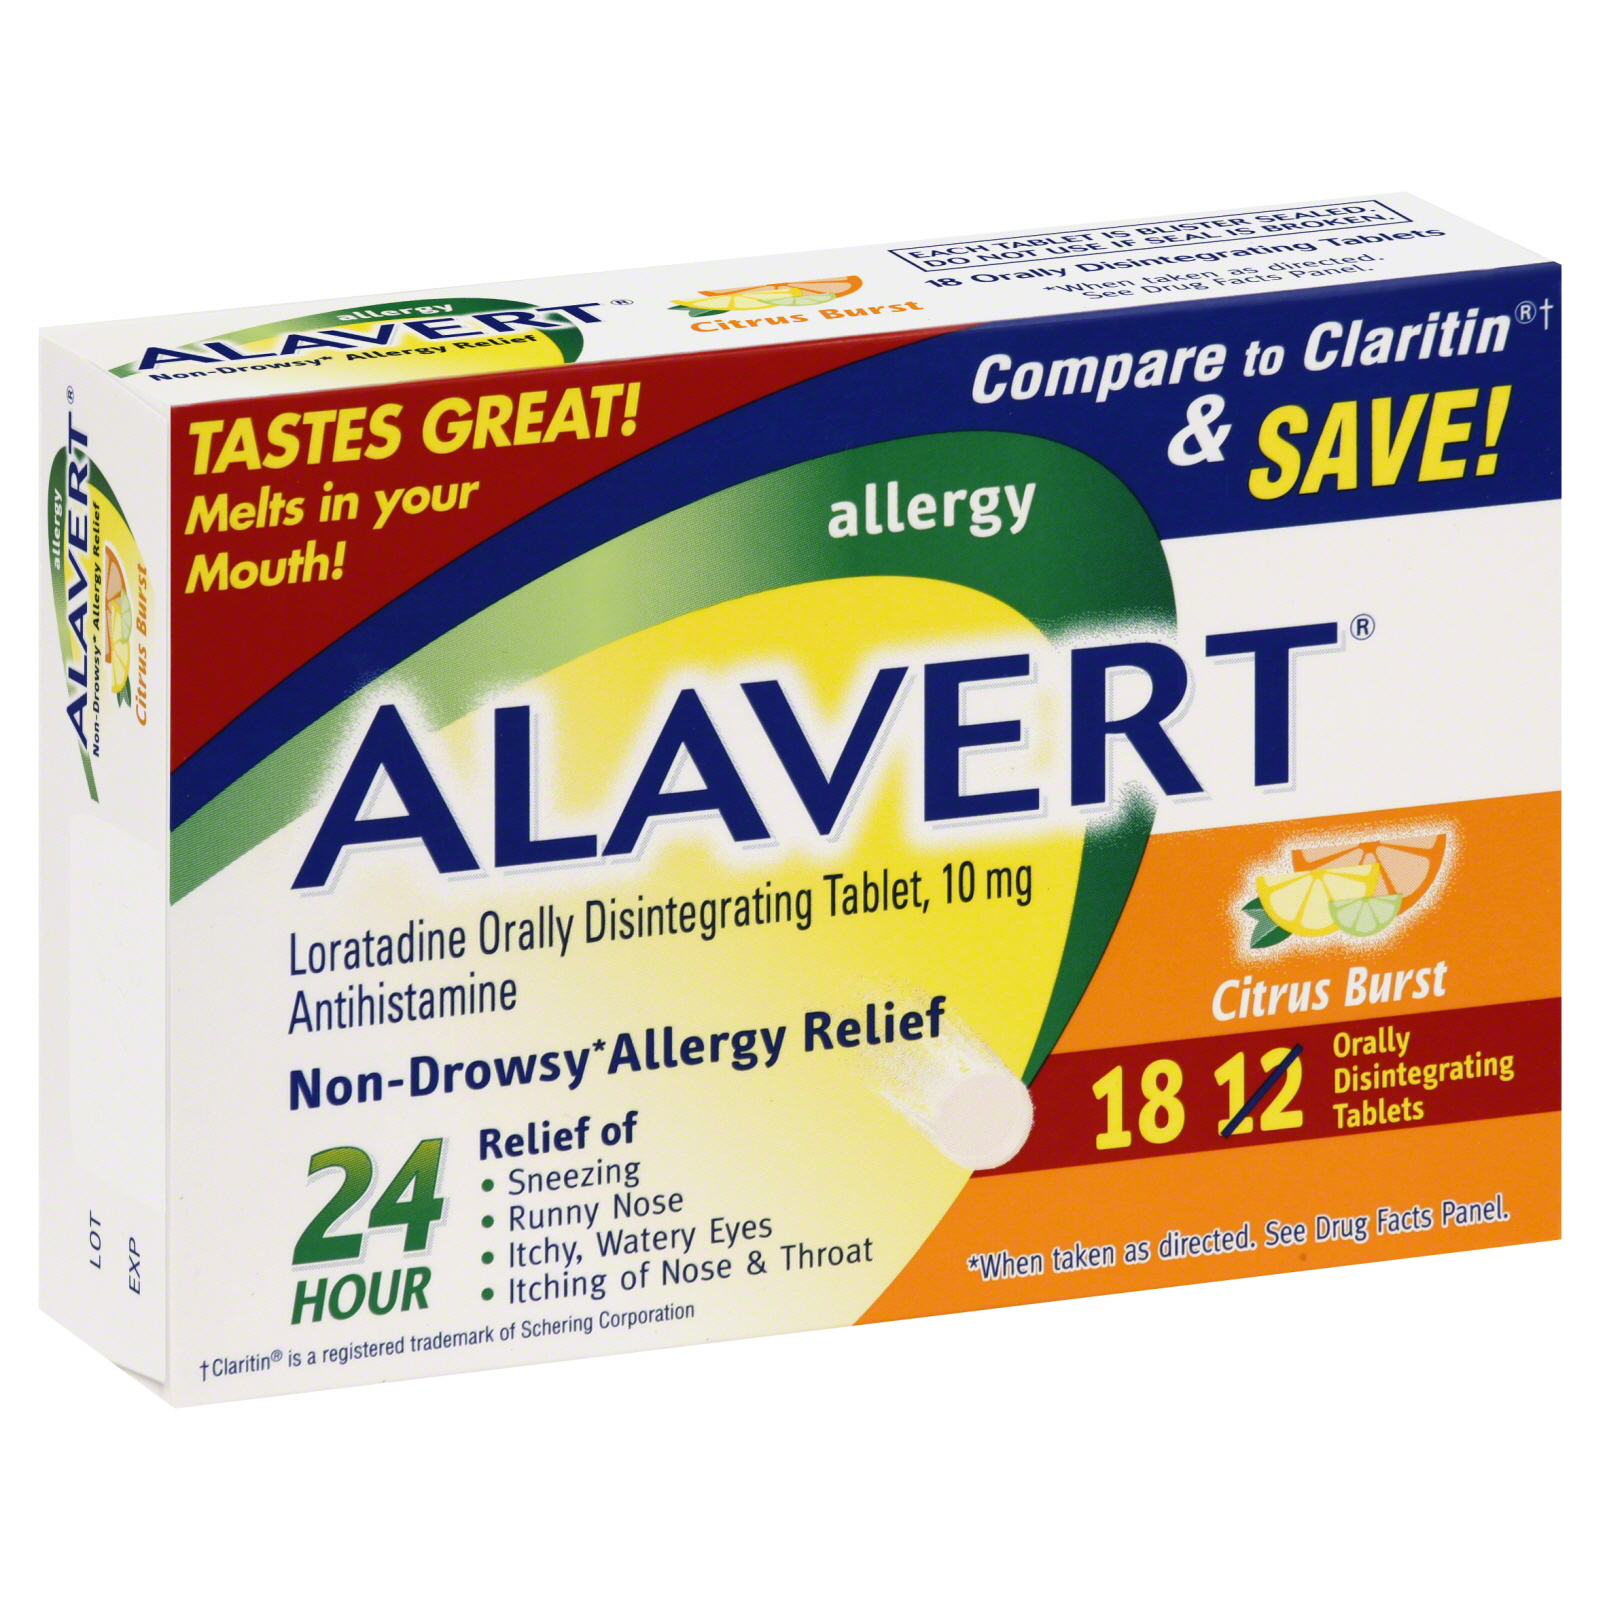 Alavert  Allergy Relief, Non-Drowsy, 10